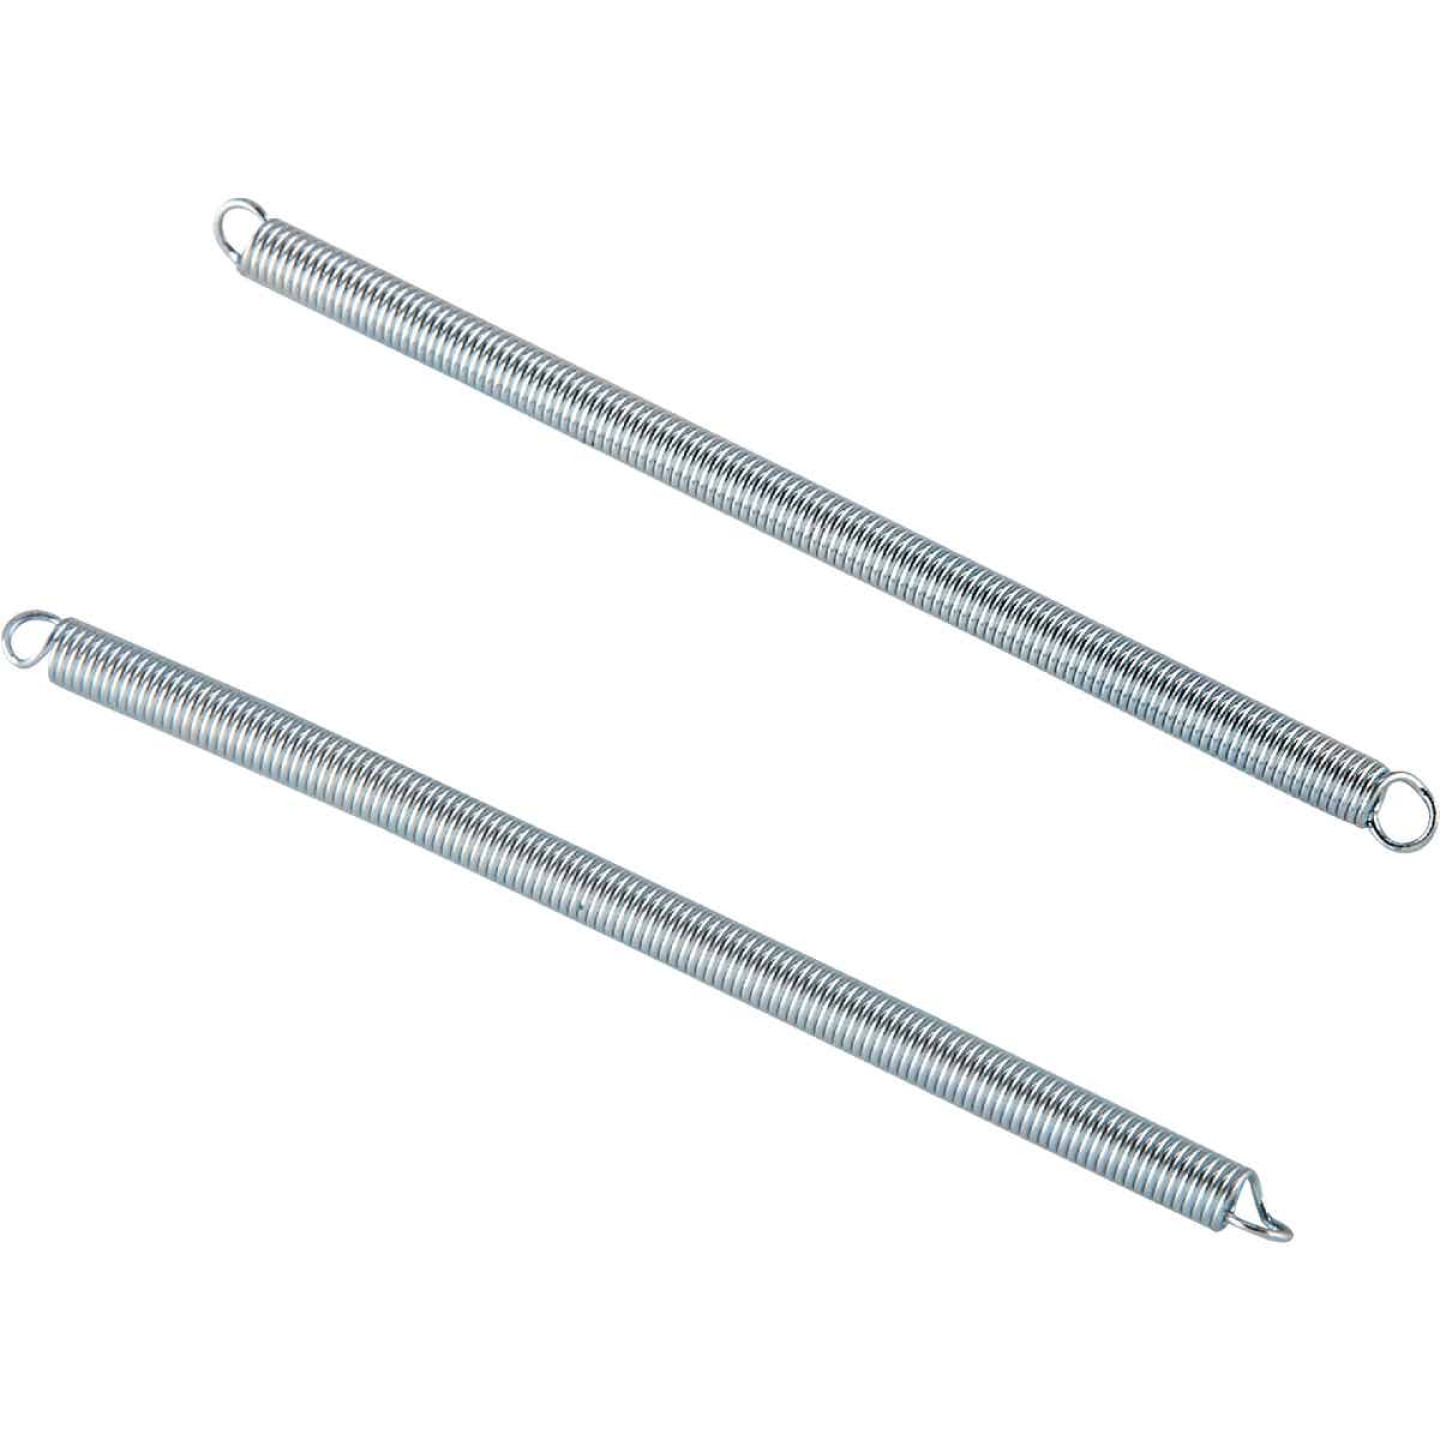 Century Spring 8-1/2 In. x 9/16 In. Extension Spring (1 Count) Image 1